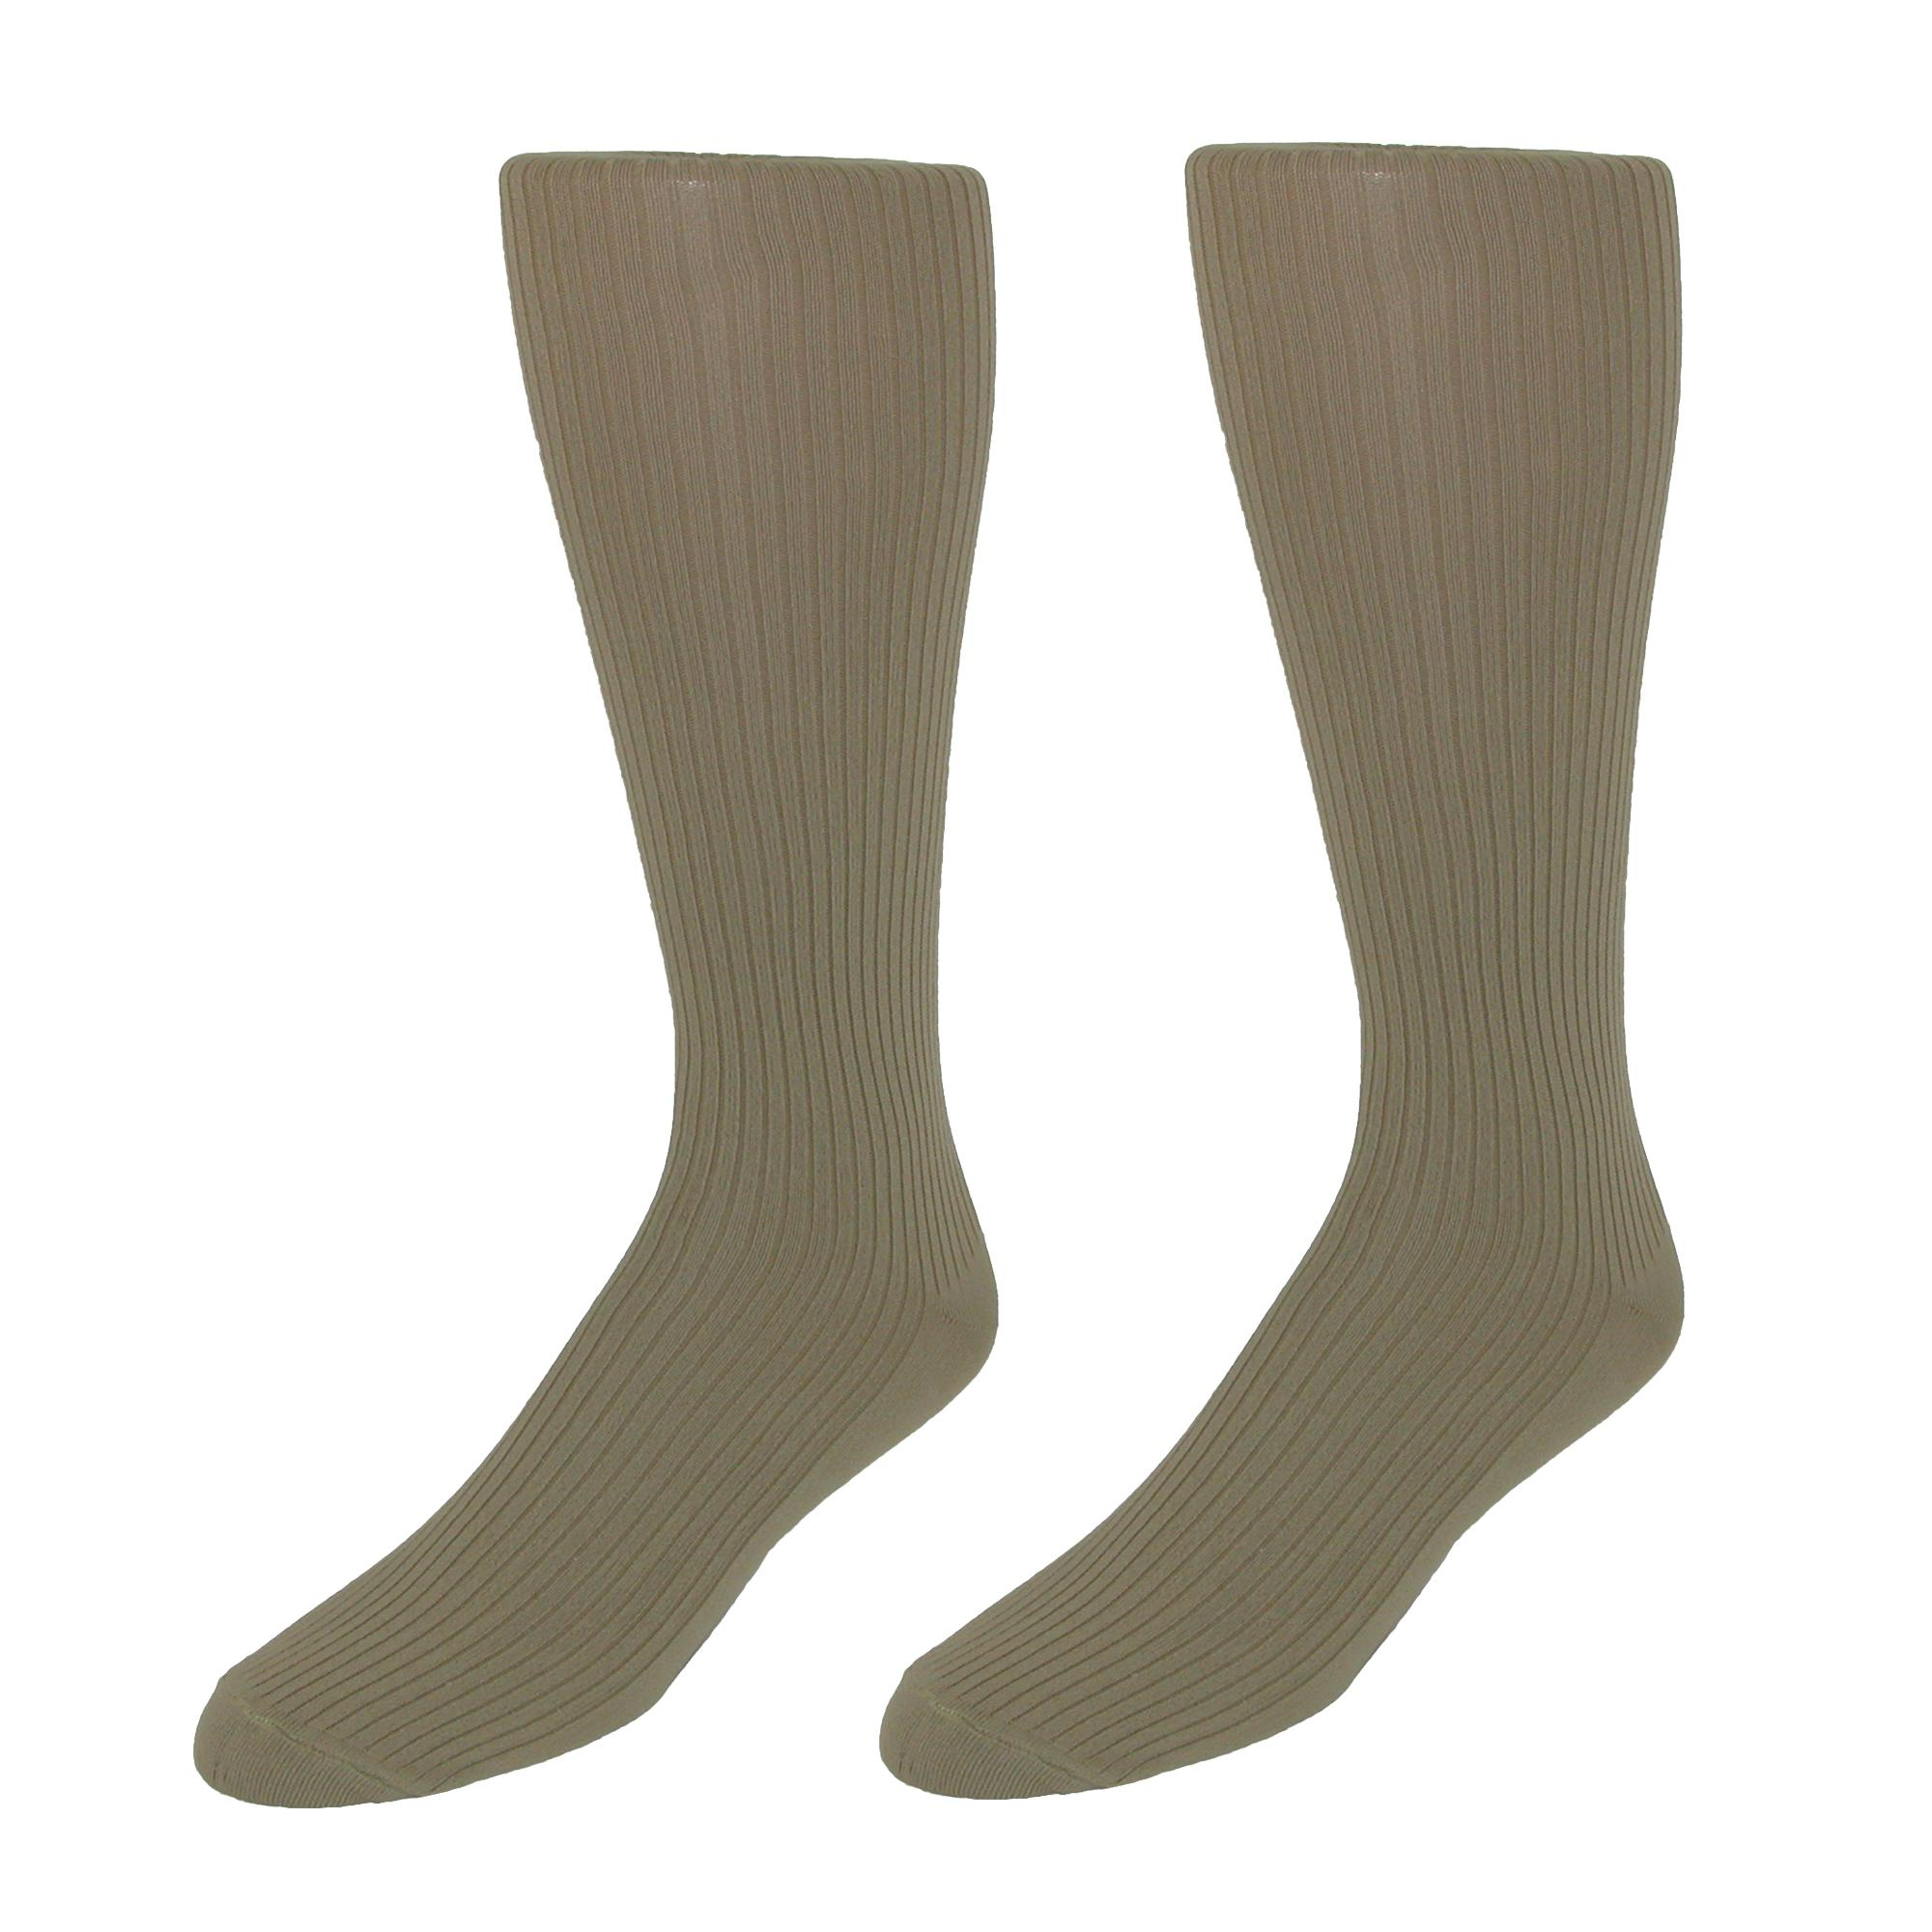 New-Jefferies-Socks-Men-039-s-Microfiber-Over-the-Calf-Dress-Socks-2-Pair-Pack miniature 5